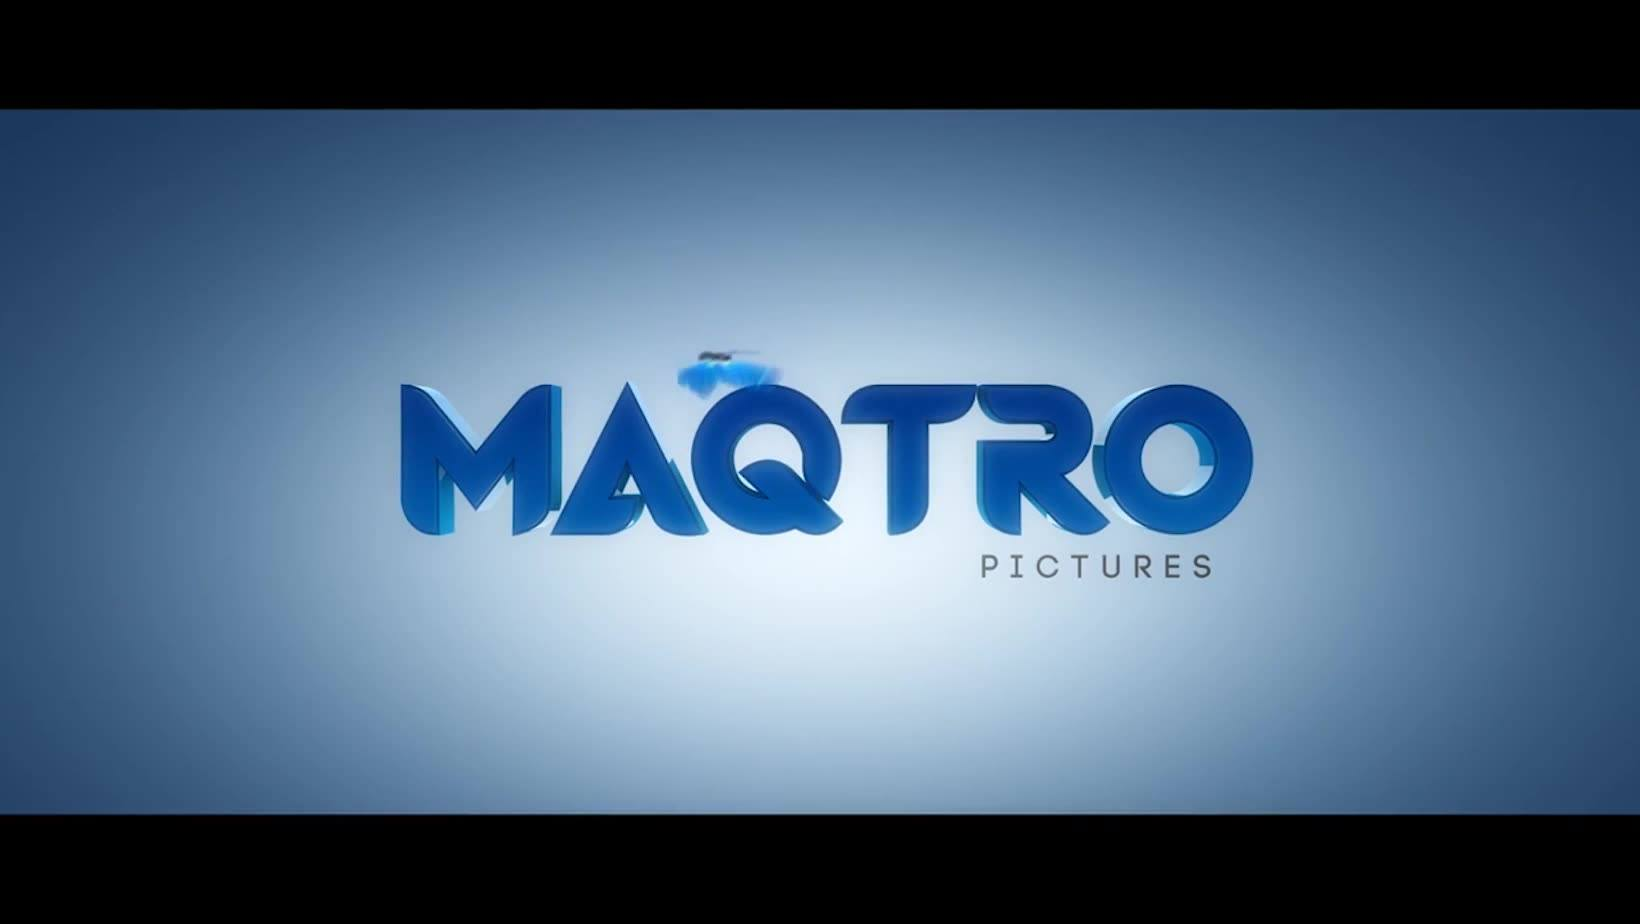 Maqtro Pictures